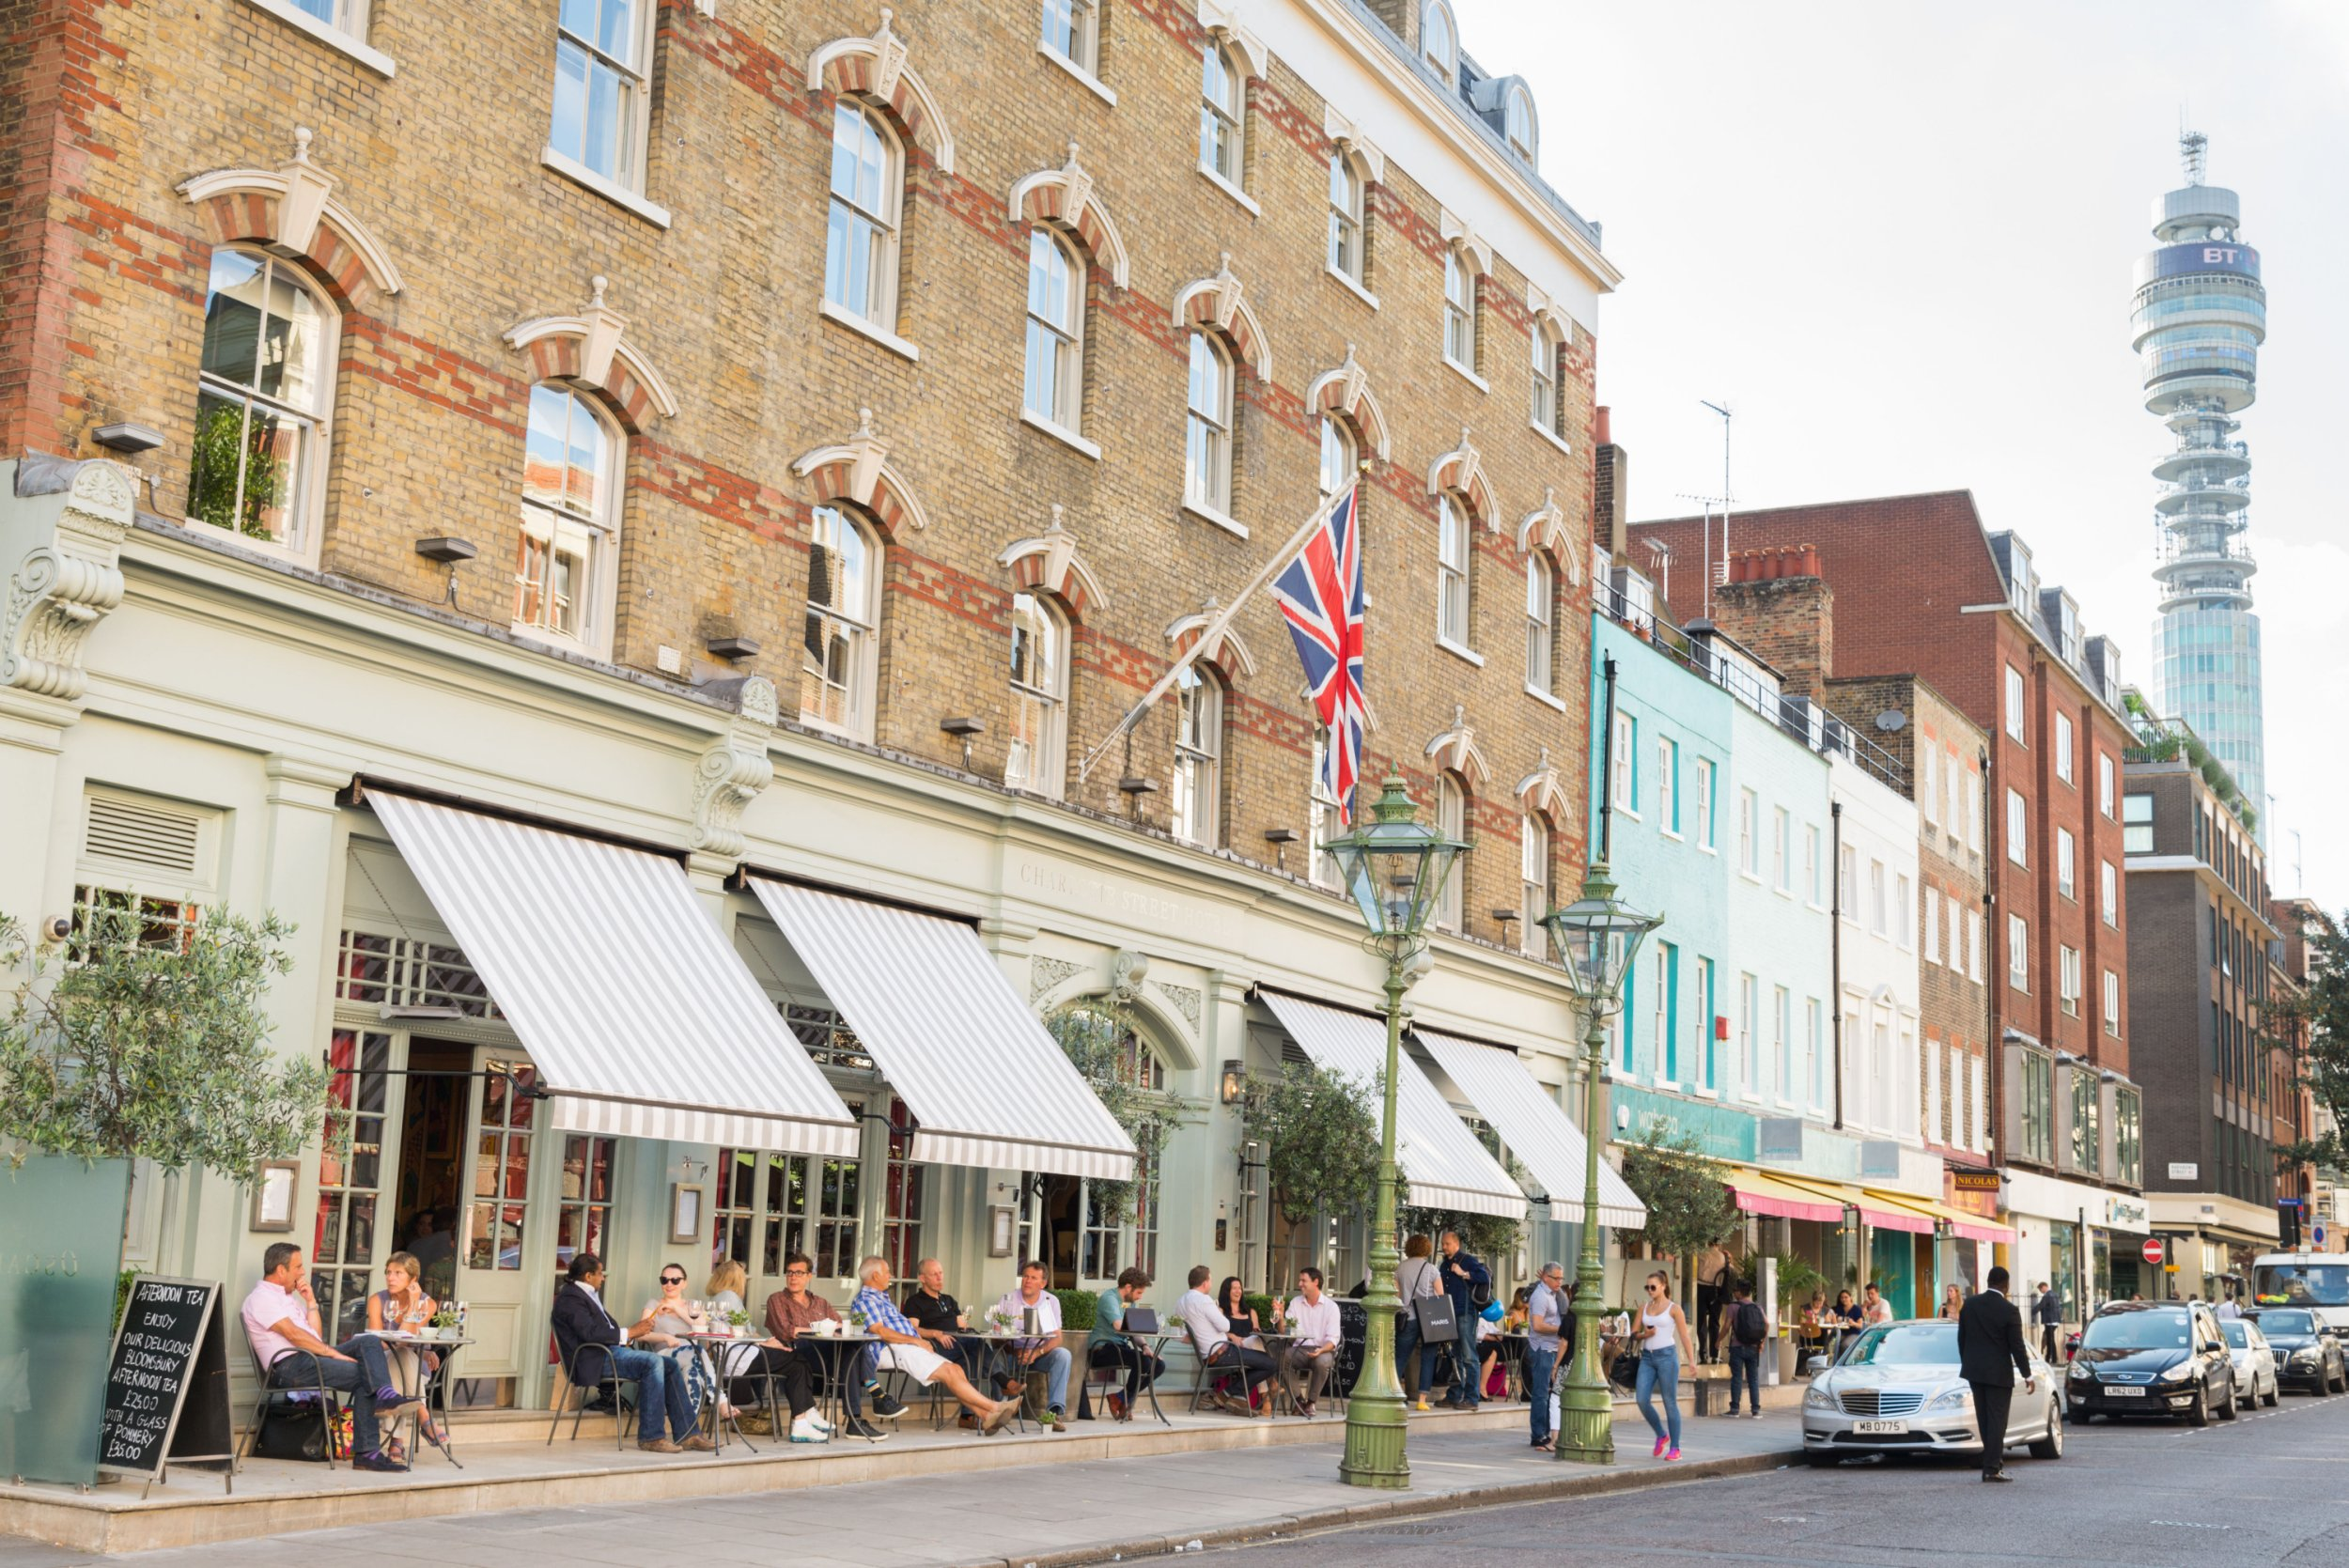 Revealed: The ten best places to live in London